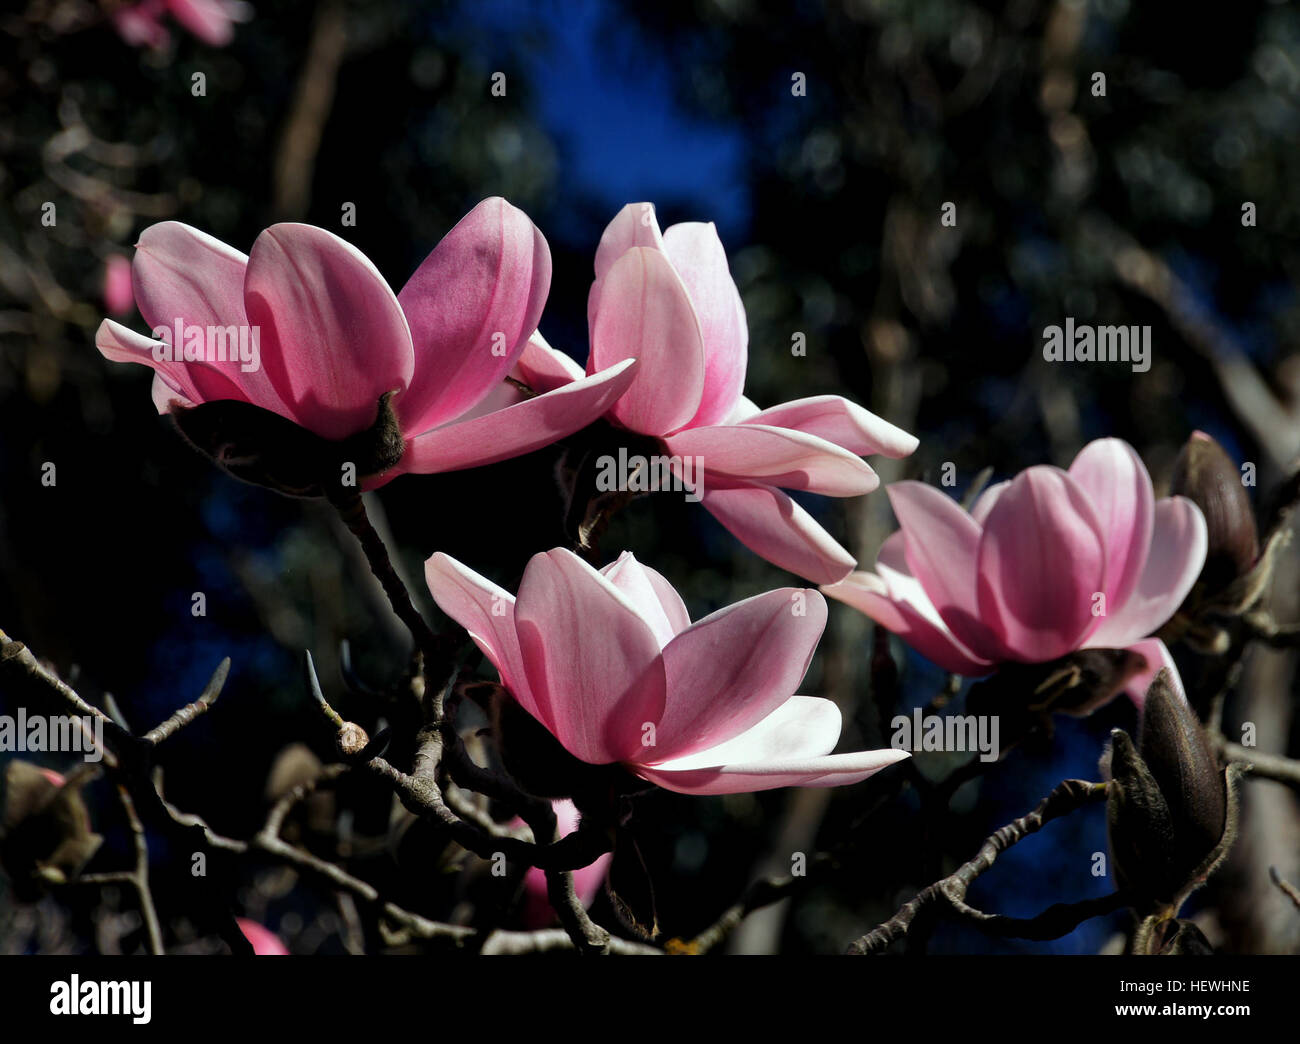 Magnolia is a large genus of about 210 flowering plant species in the subfamily Magnolioideae of the family Magnoliaceae. Stock Photo